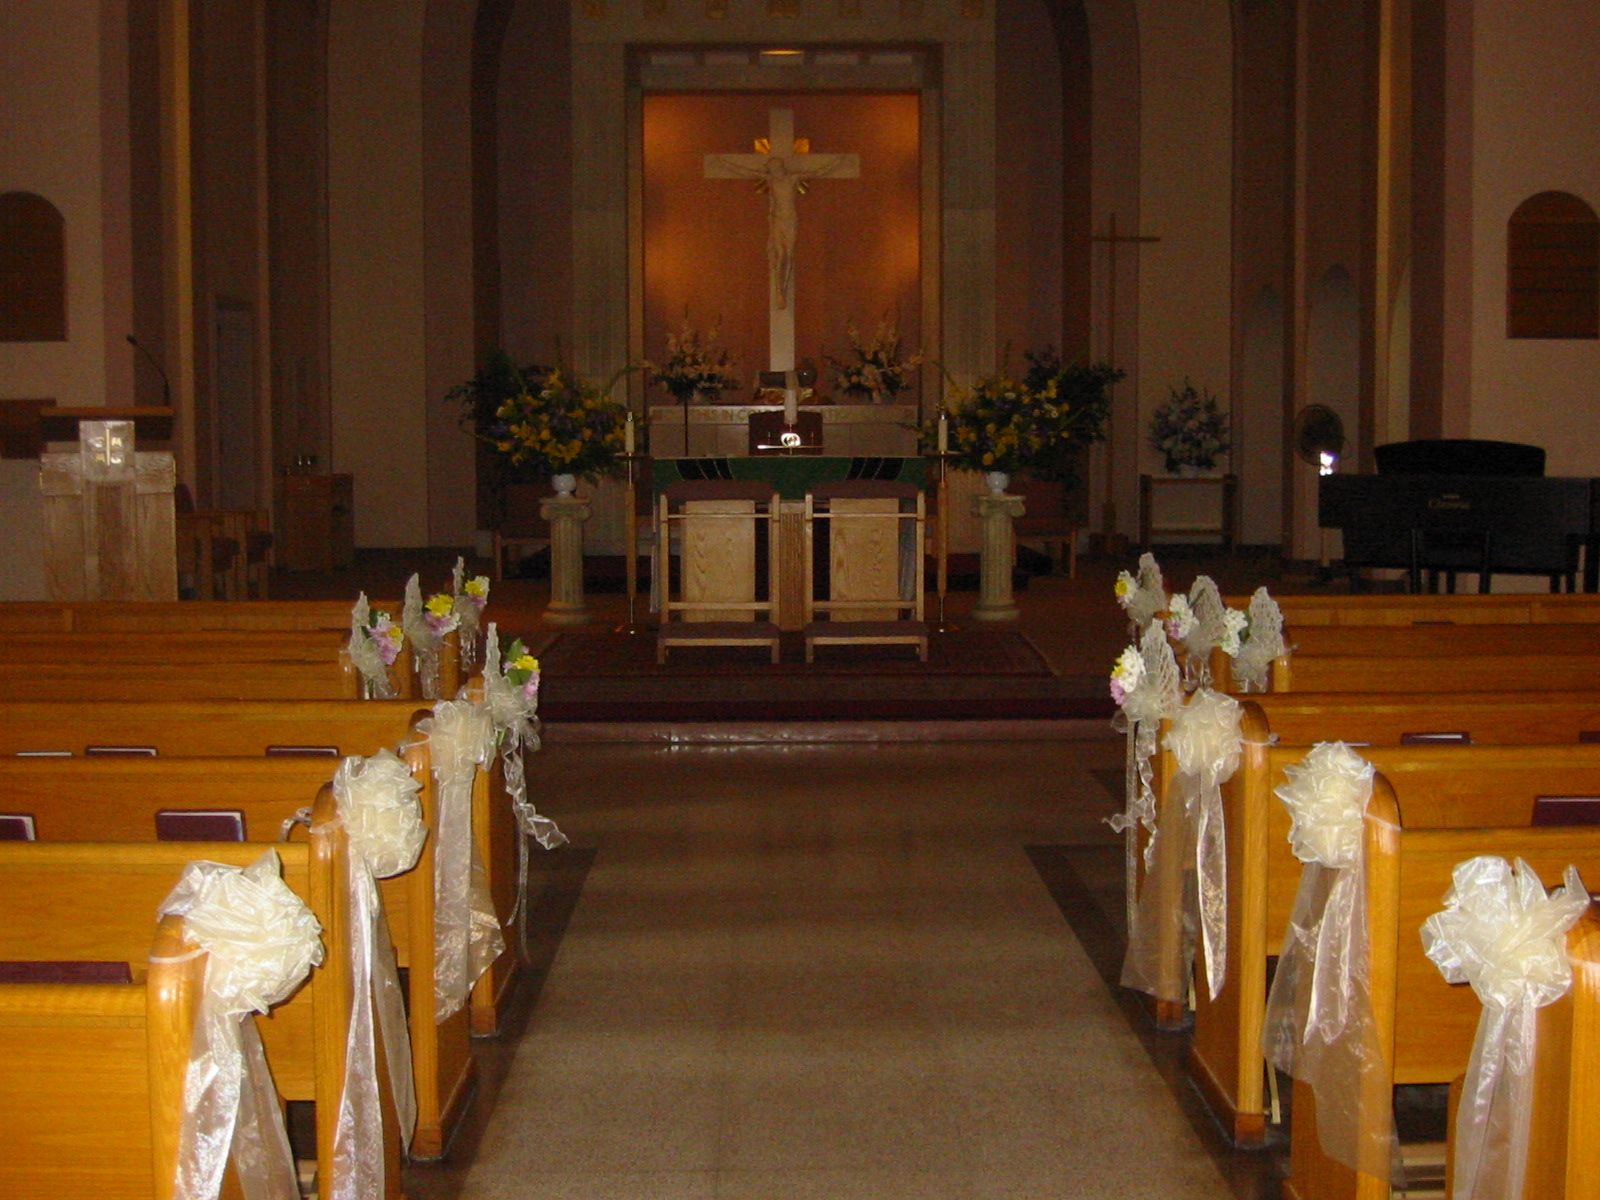 Wedding quinceanera attire and decor in tulare ca for Church wedding decorations